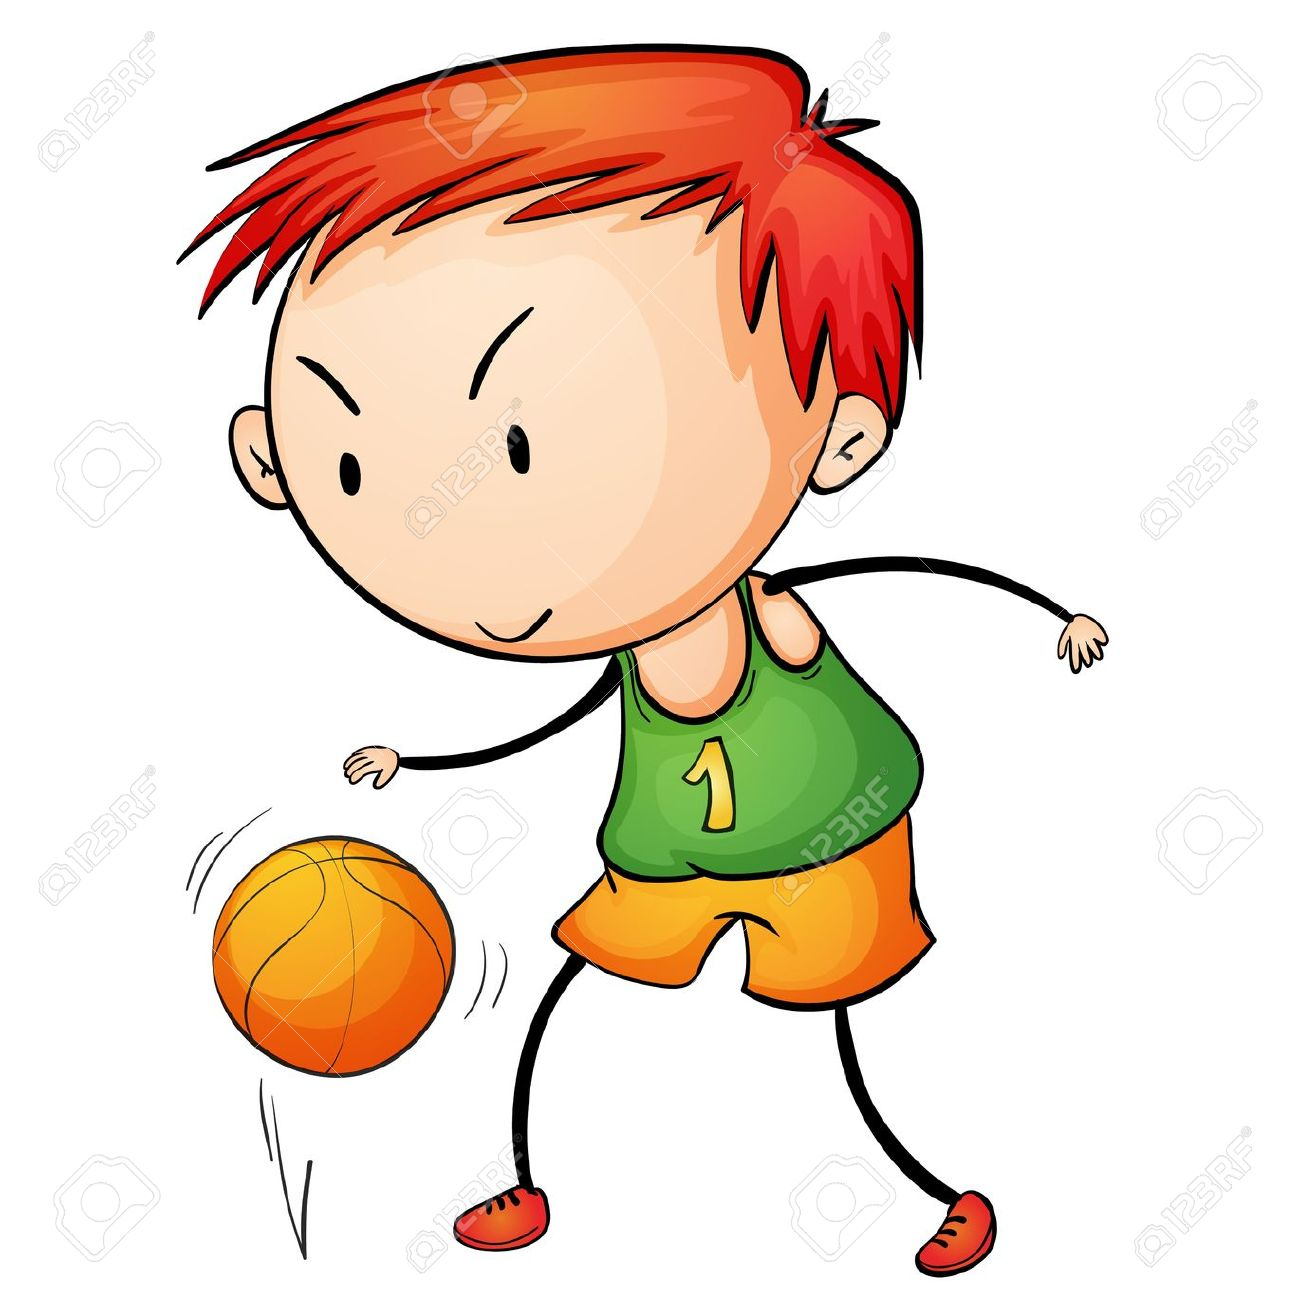 Boy bouncing a ball clipart.